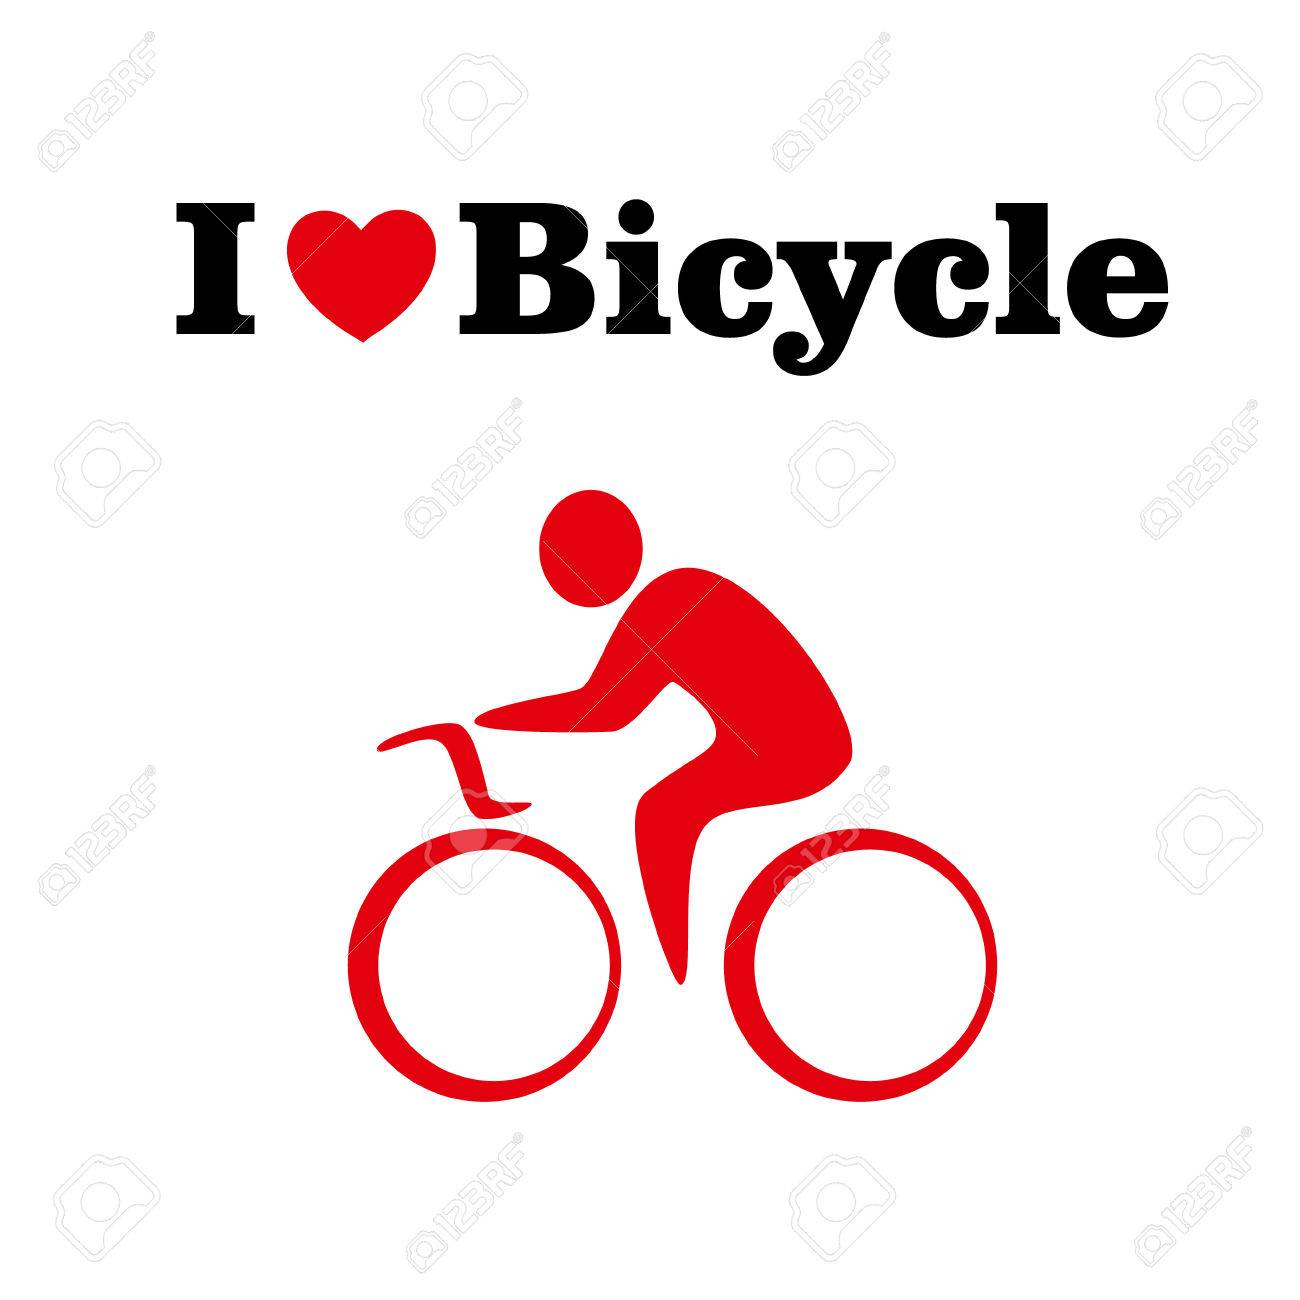 I Love Bicycle Concept Vector Icon 10 Eps Royalty Free Cliparts